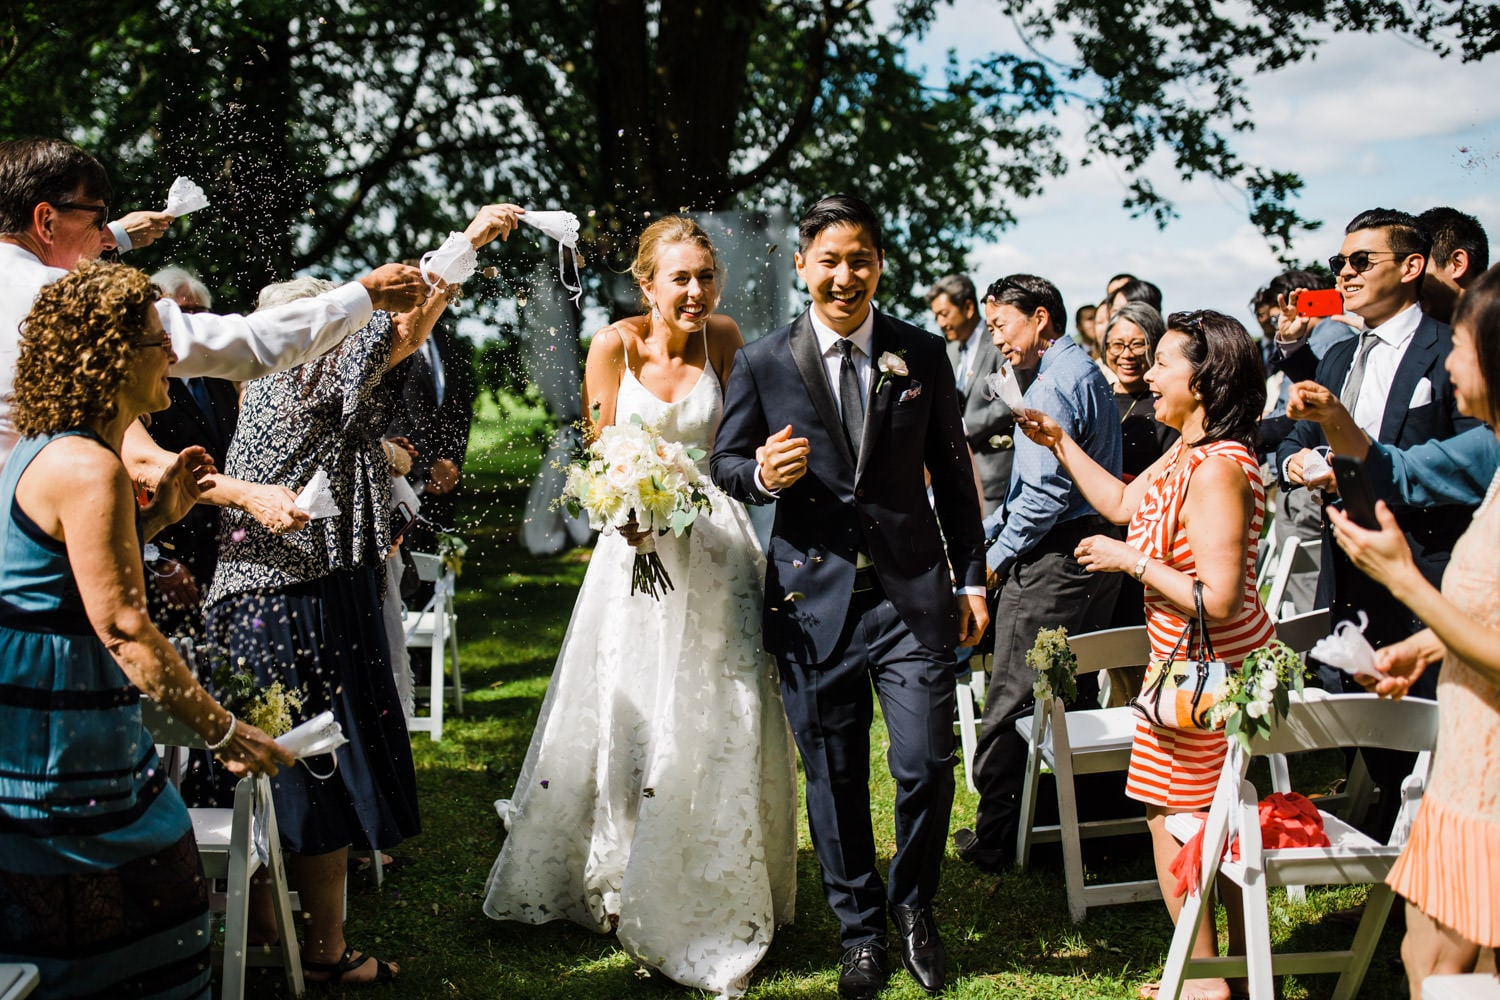 guests throw dried flowers at bride and groom - ottawa backyard wedding - carley teresa photography